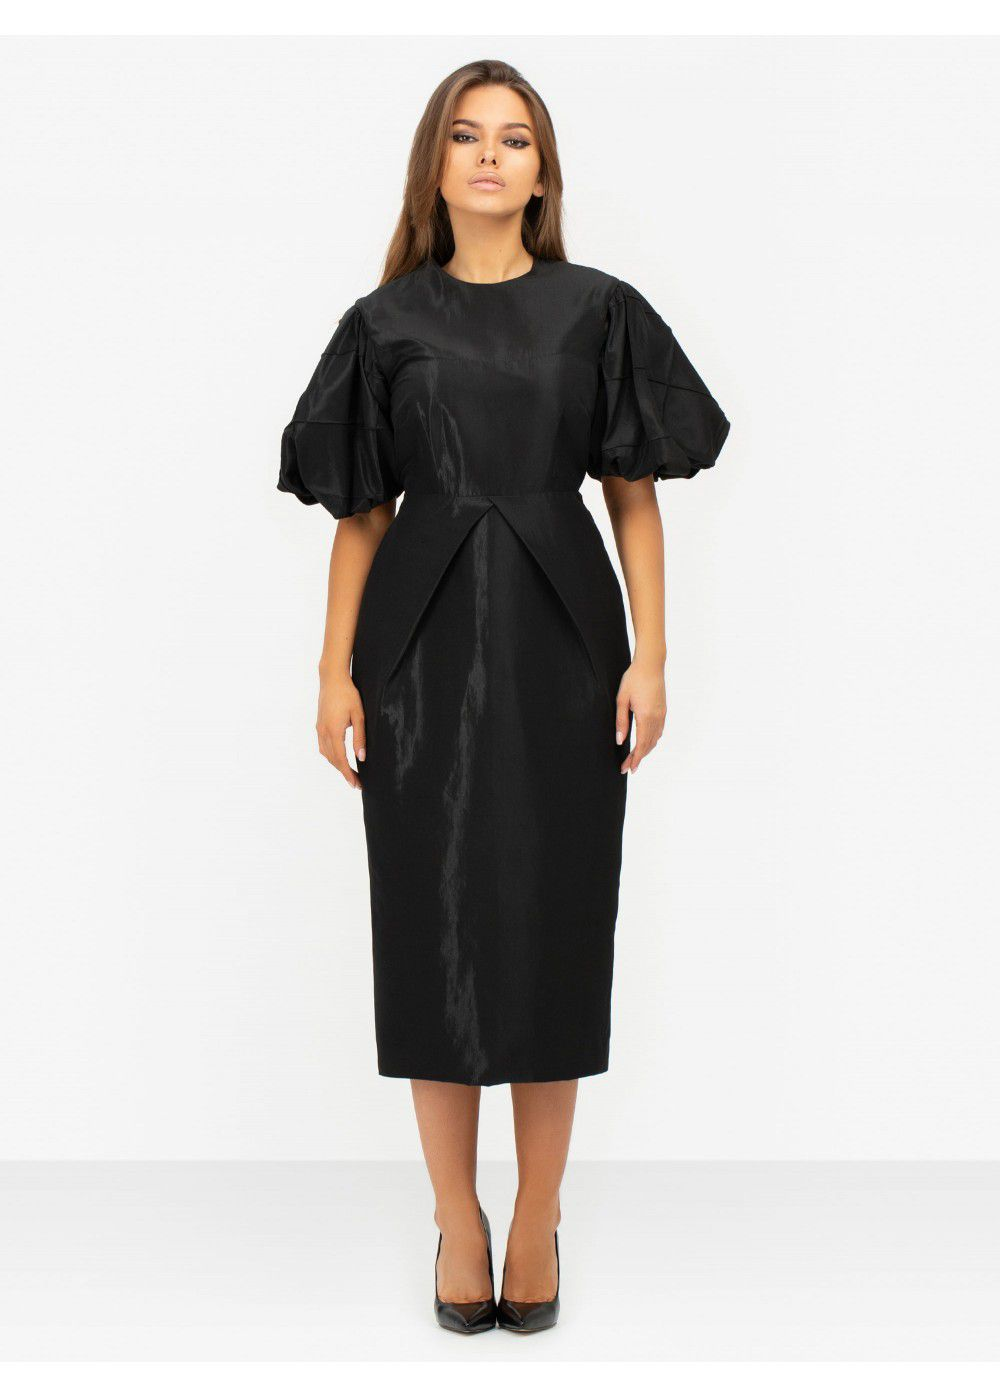 Masterpeace Black Midi Dress